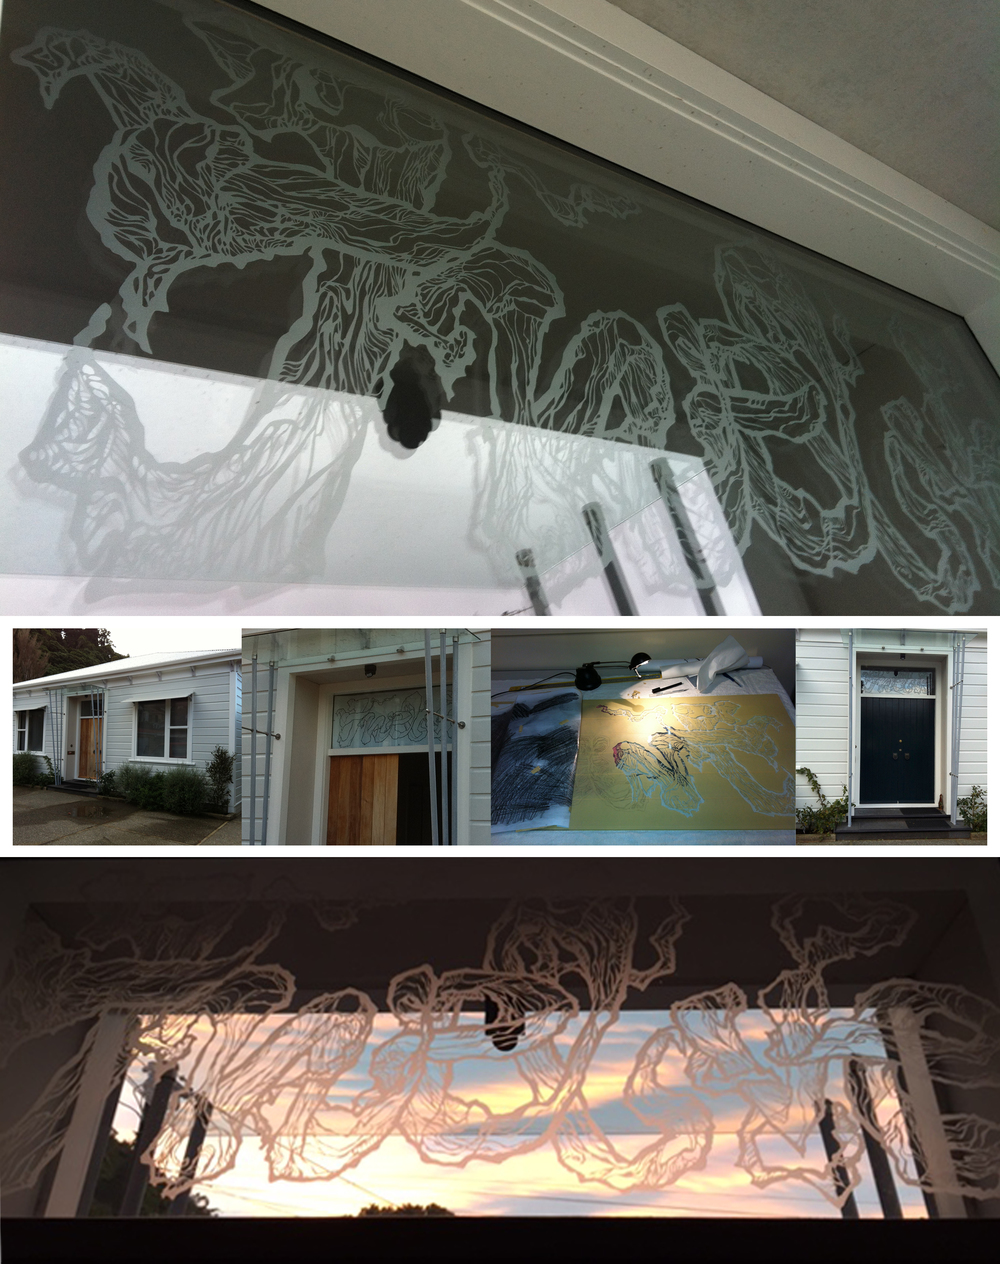 'Twelve',  Hand cut and etched glass double glazed window. Commission work for a personalised 'number' of villa  Anna Campion & David Hazlett, Thorndon- Wellington, 2012